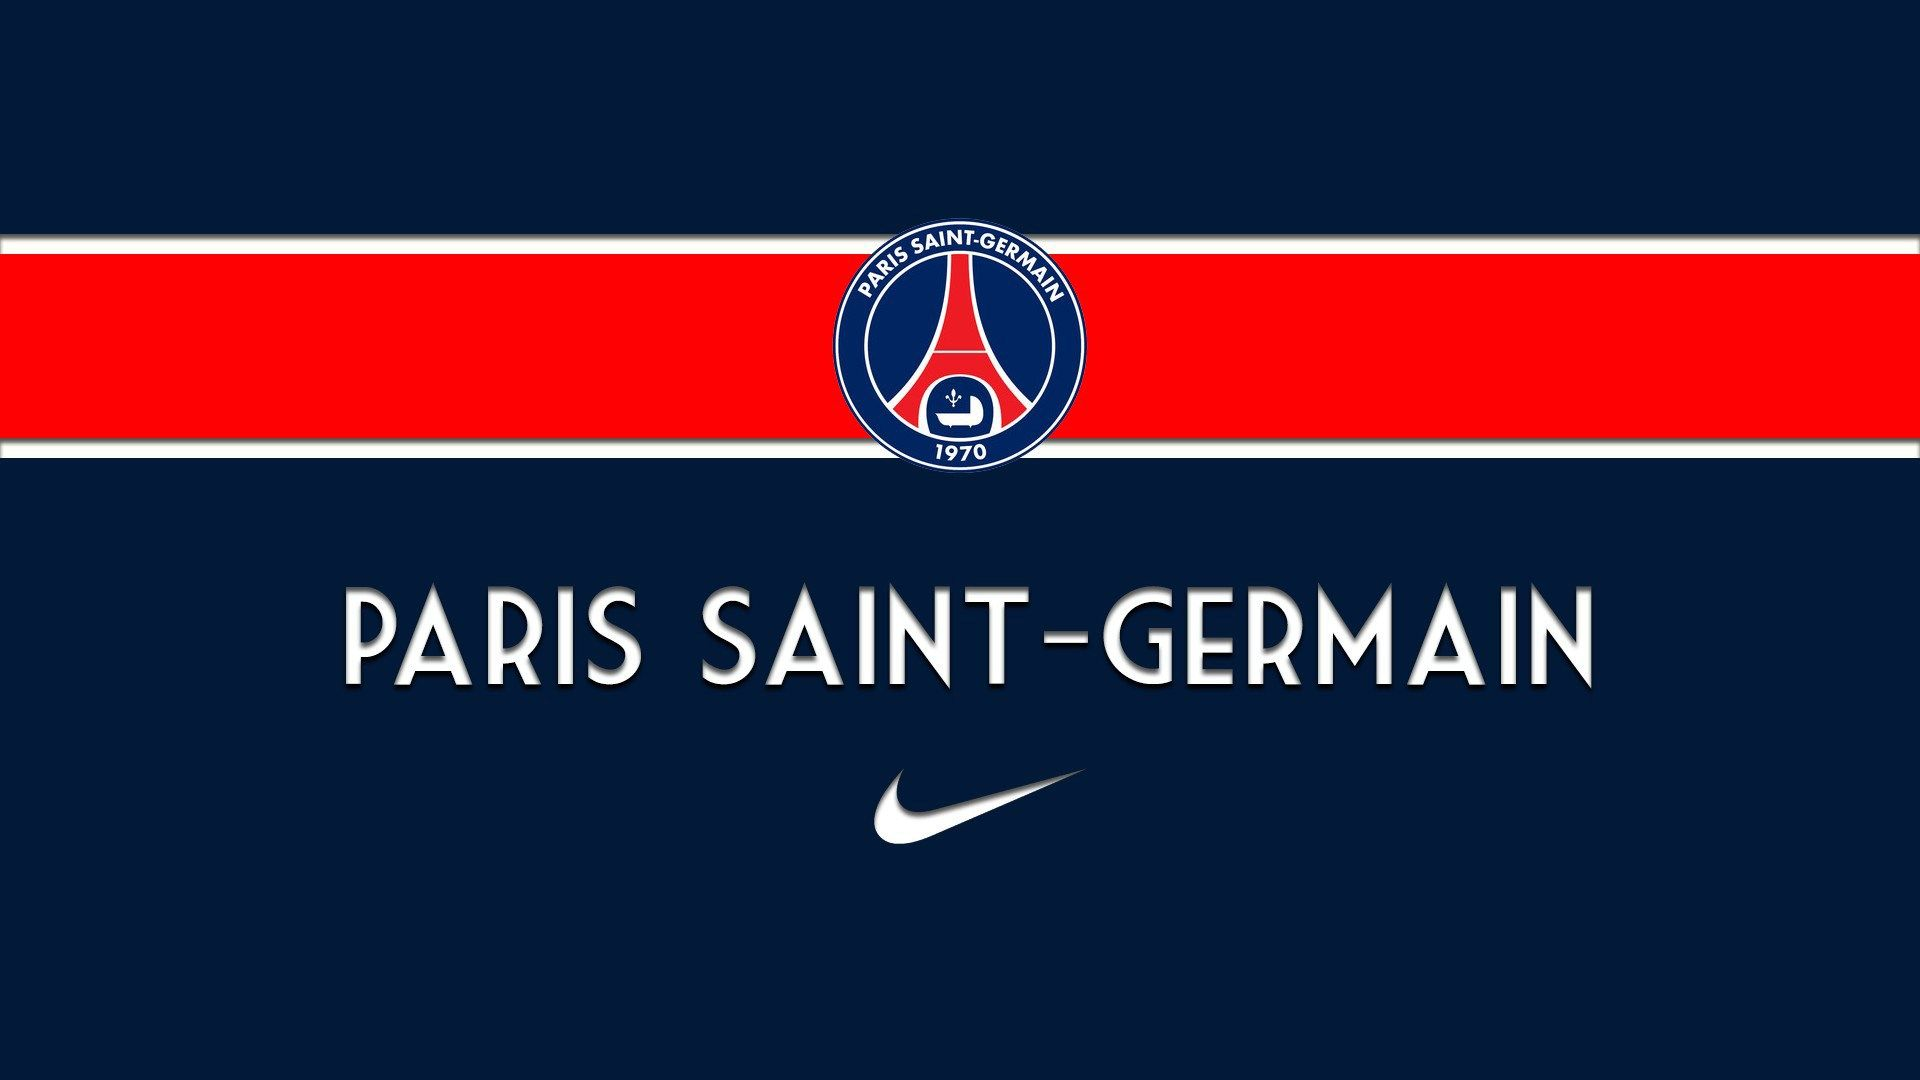 Hd Paris Saint Germain Wallpaper